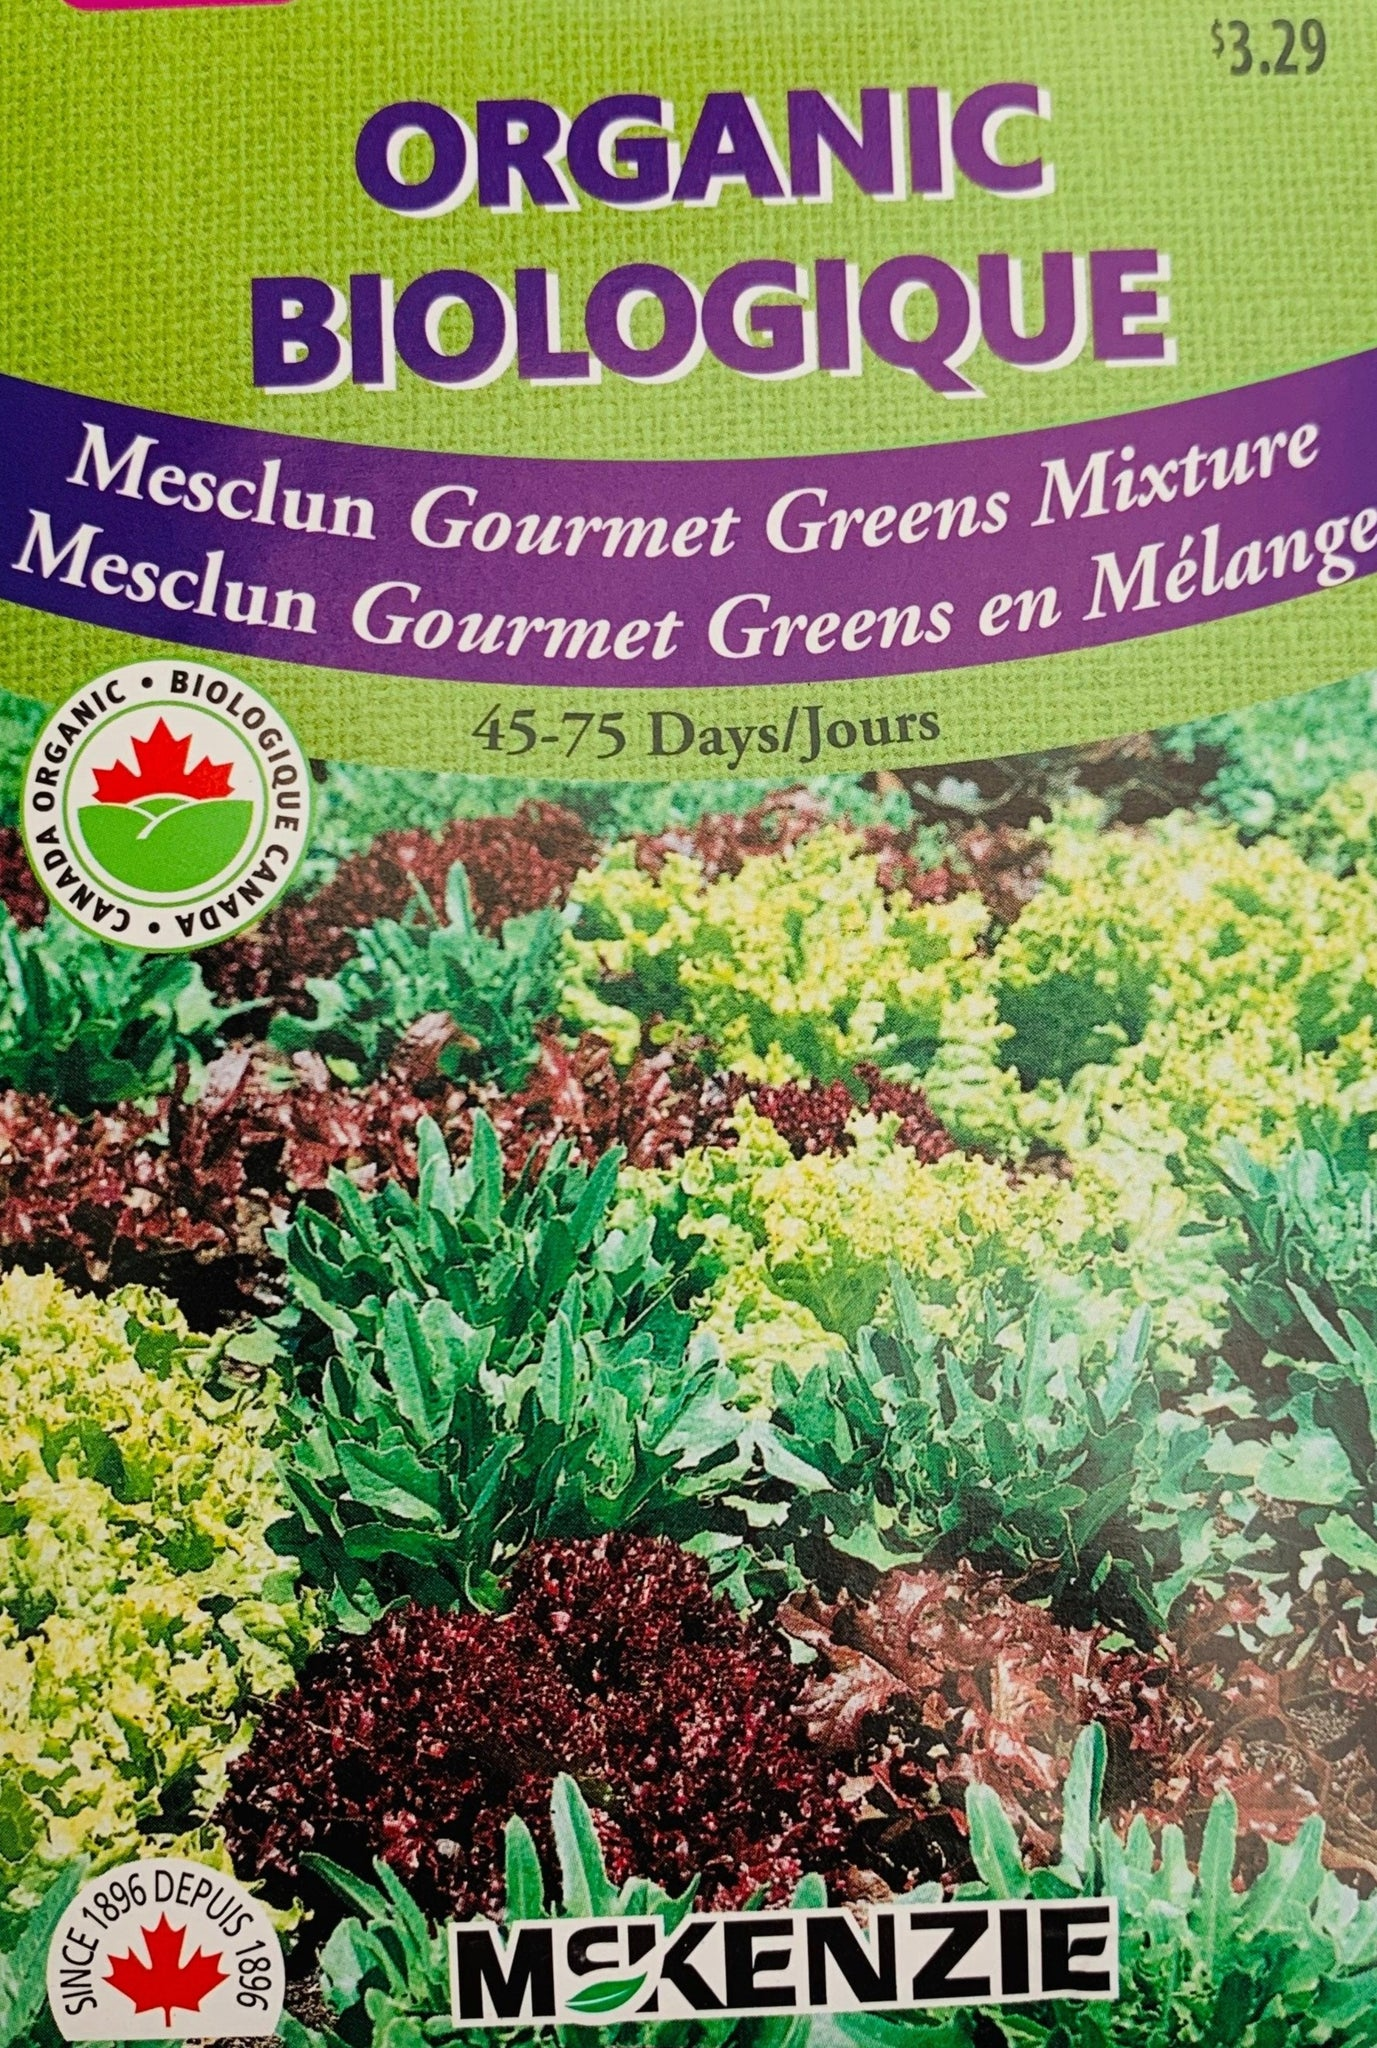 McKenzie Organic Seeds - Mesclun Gourmet Greens Mixture